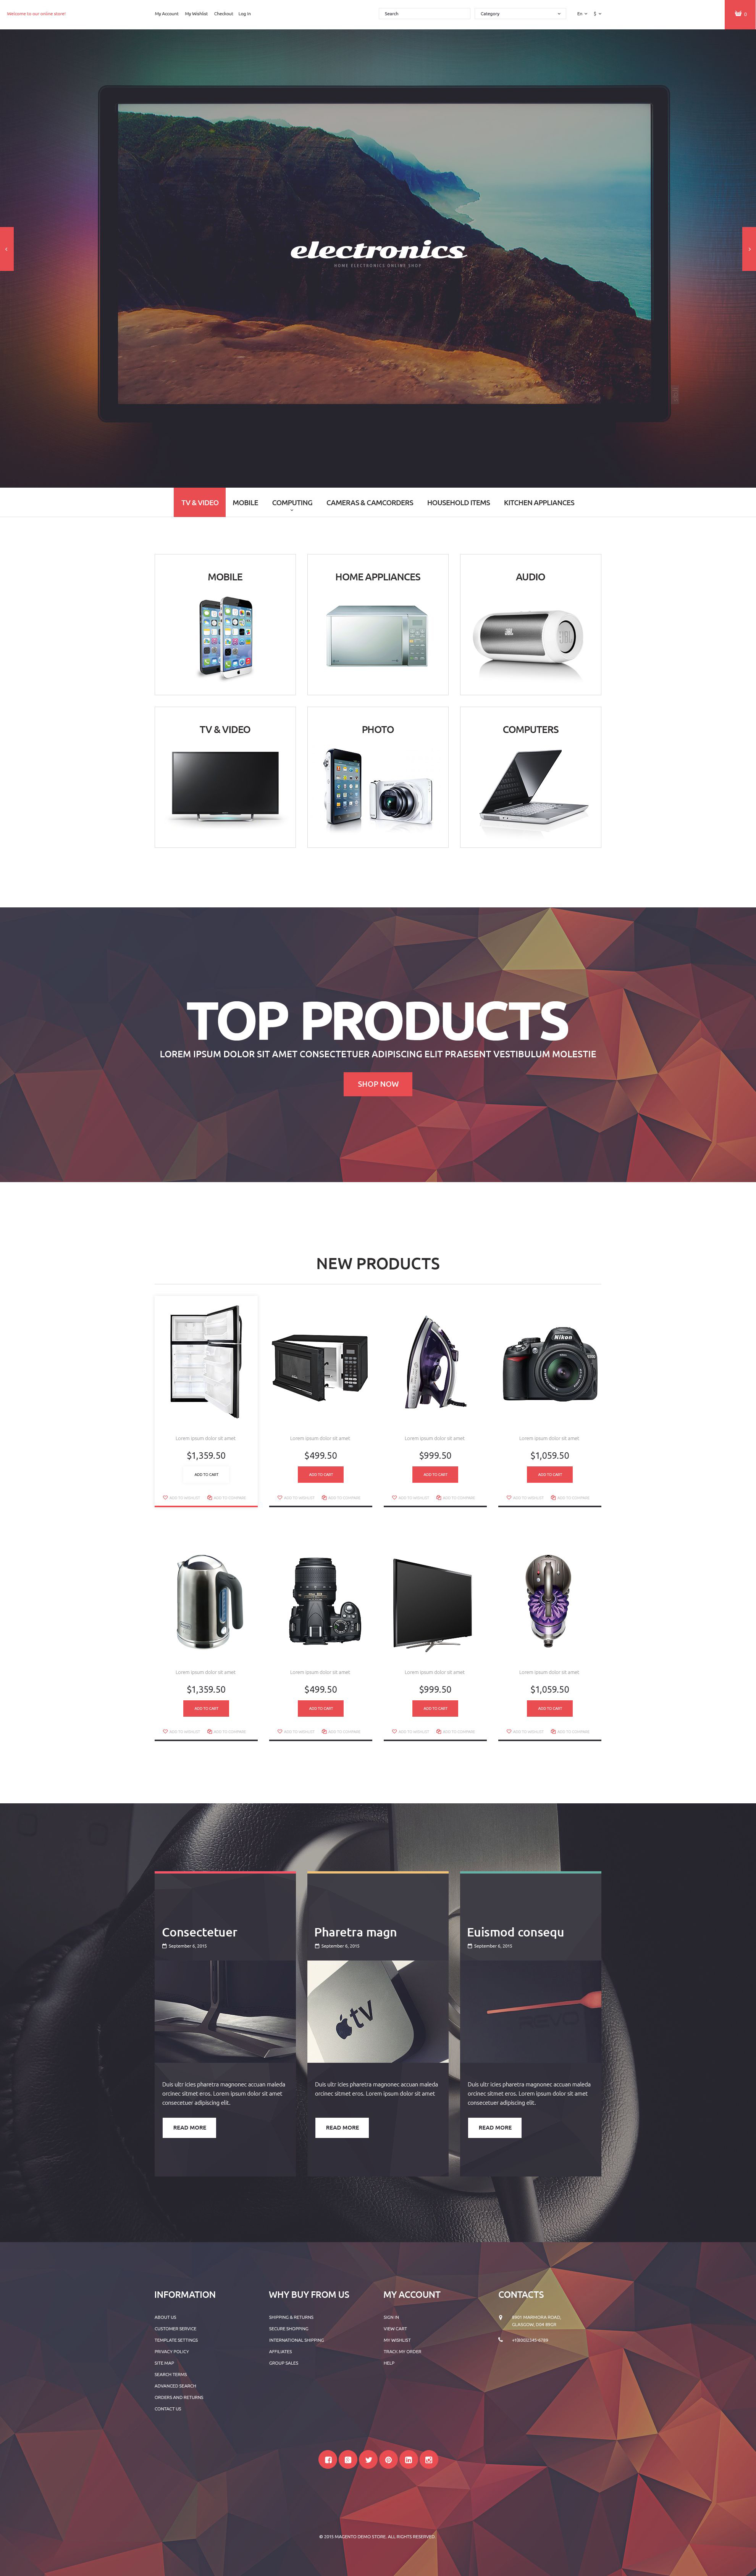 The Electronic Online Shop Magento Design 53323, one of the best Magento themes of its kind (electronics, most popular), also known as electronic online shop Magento template, delivery Magento template, computer Magento template, office Magento template, staff Magento template, printer Magento template, notebook Magento template, laptop shipment Magento template, desktop portable Magento template, scanner Magento template, camera Magento template, monitor Magento template, cable system Magento template, technology Magento template, processor Magento template, installation Magento template, hardware Magento template, input Magento template, device Magento template, memory Magento template, server Magento template, accessory Magento template, wireless Magento template, PC connection and related with electronic online shop, delivery, computer, office, staff, printer, notebook, laptop shipment, desktop portable, scanner, camera, monitor, cable system, technology, processor, installation, hardware, input, device, memory, server, accessory, wireless, PC connection, etc.